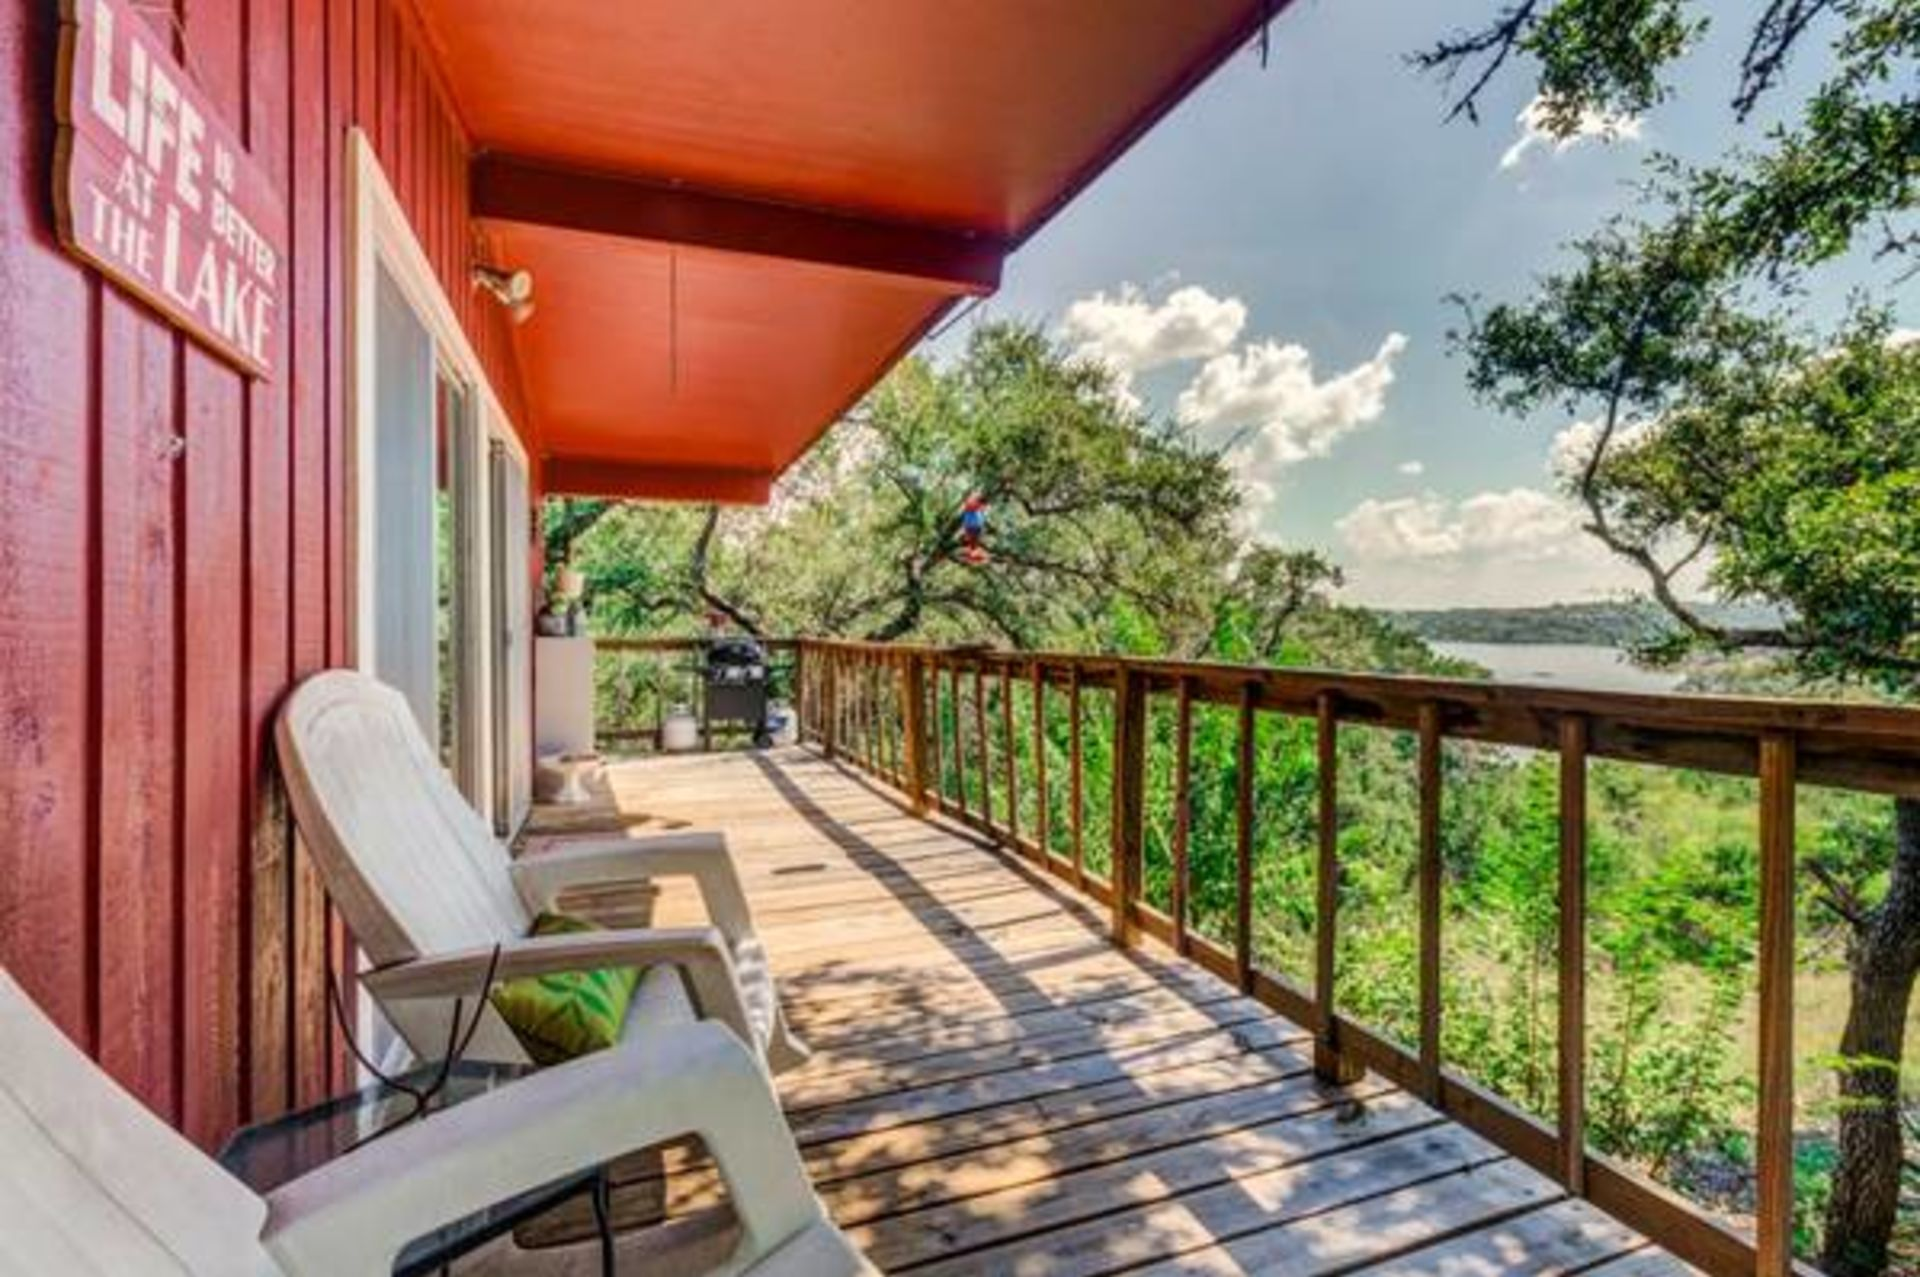 Tally Ho! How about a Cute Lake Travis Cottage on 7.5 Acres in Spicewood, Texas?